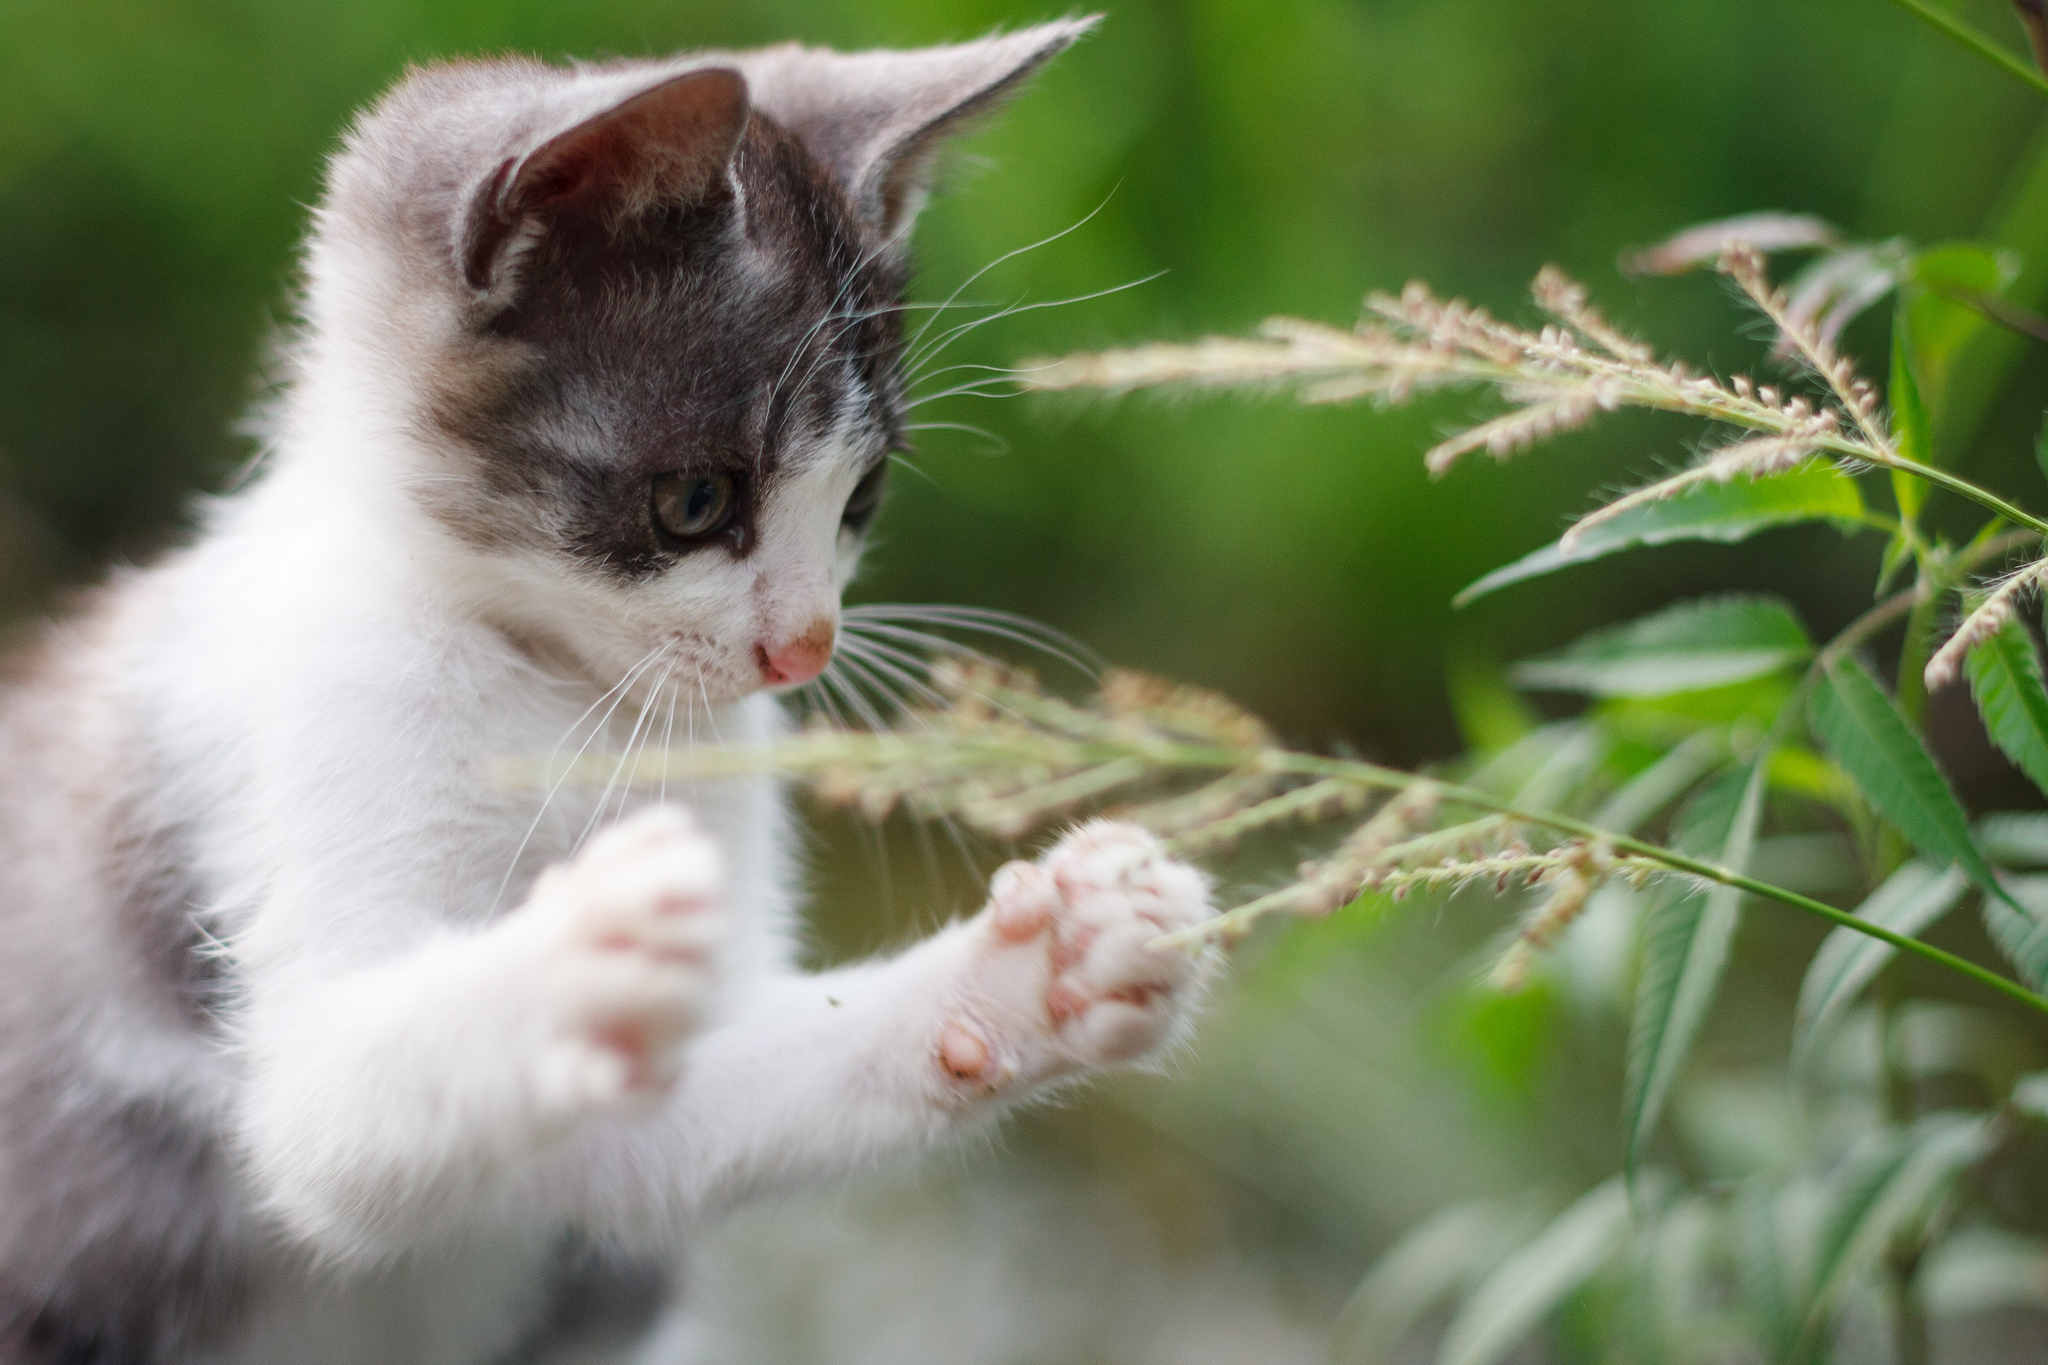 79673 download wallpaper Animals, Kitty, Kitten, Paws, Cool, Grass screensavers and pictures for free